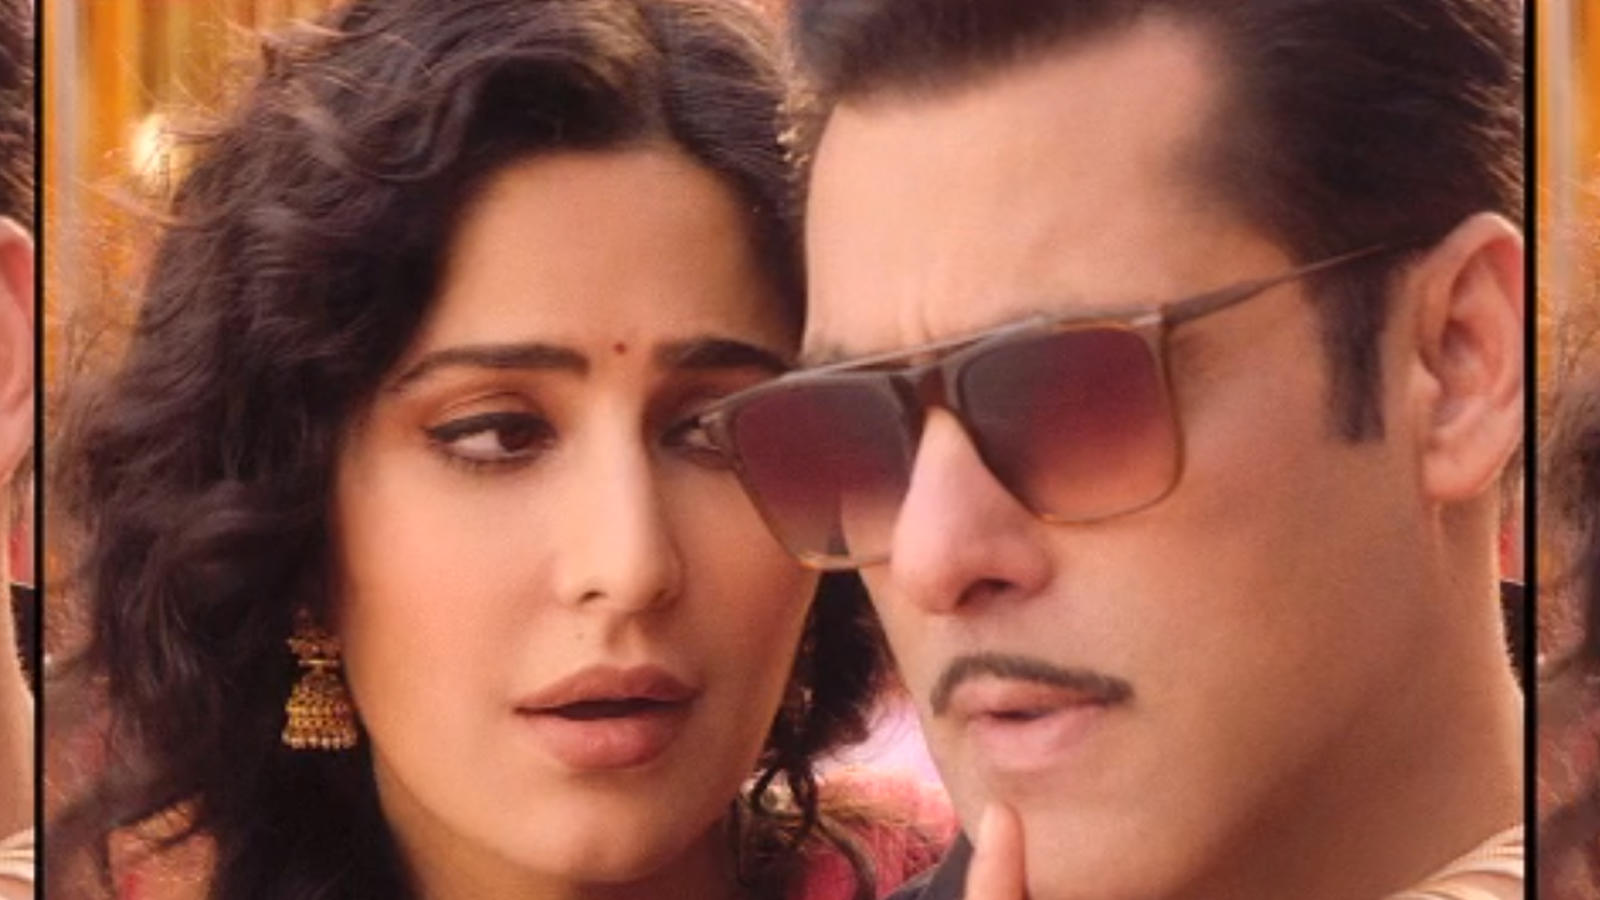 'Bharat': Katrina Kaif flirts with Salman Khan in new song 'Aithey Aa'